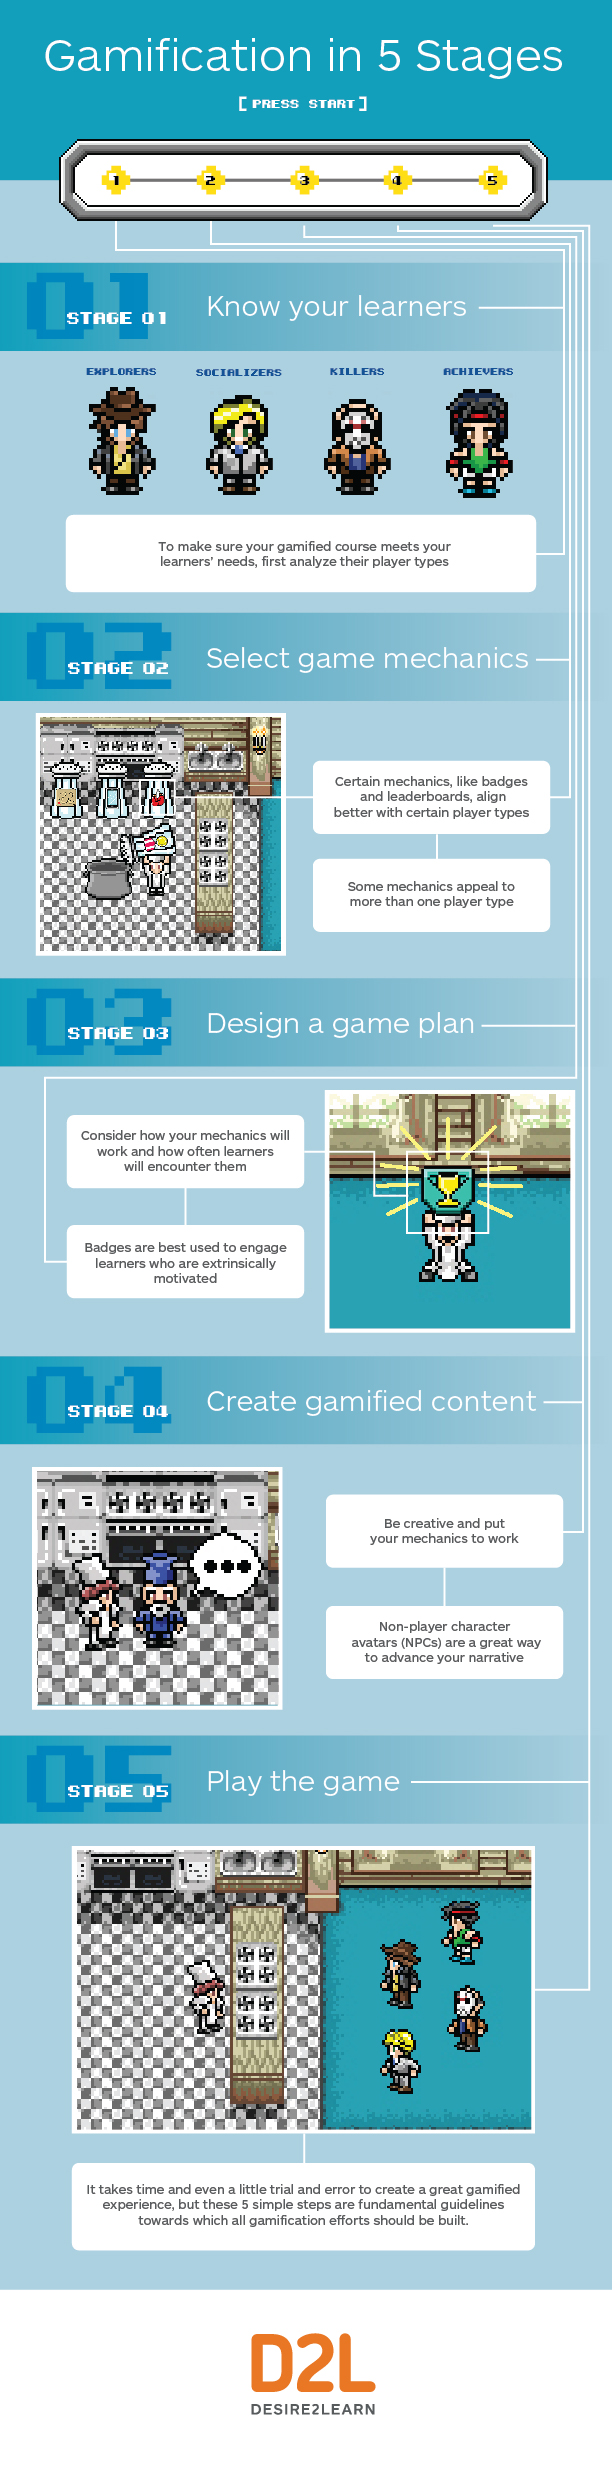 img-infographic-gamification-jpg